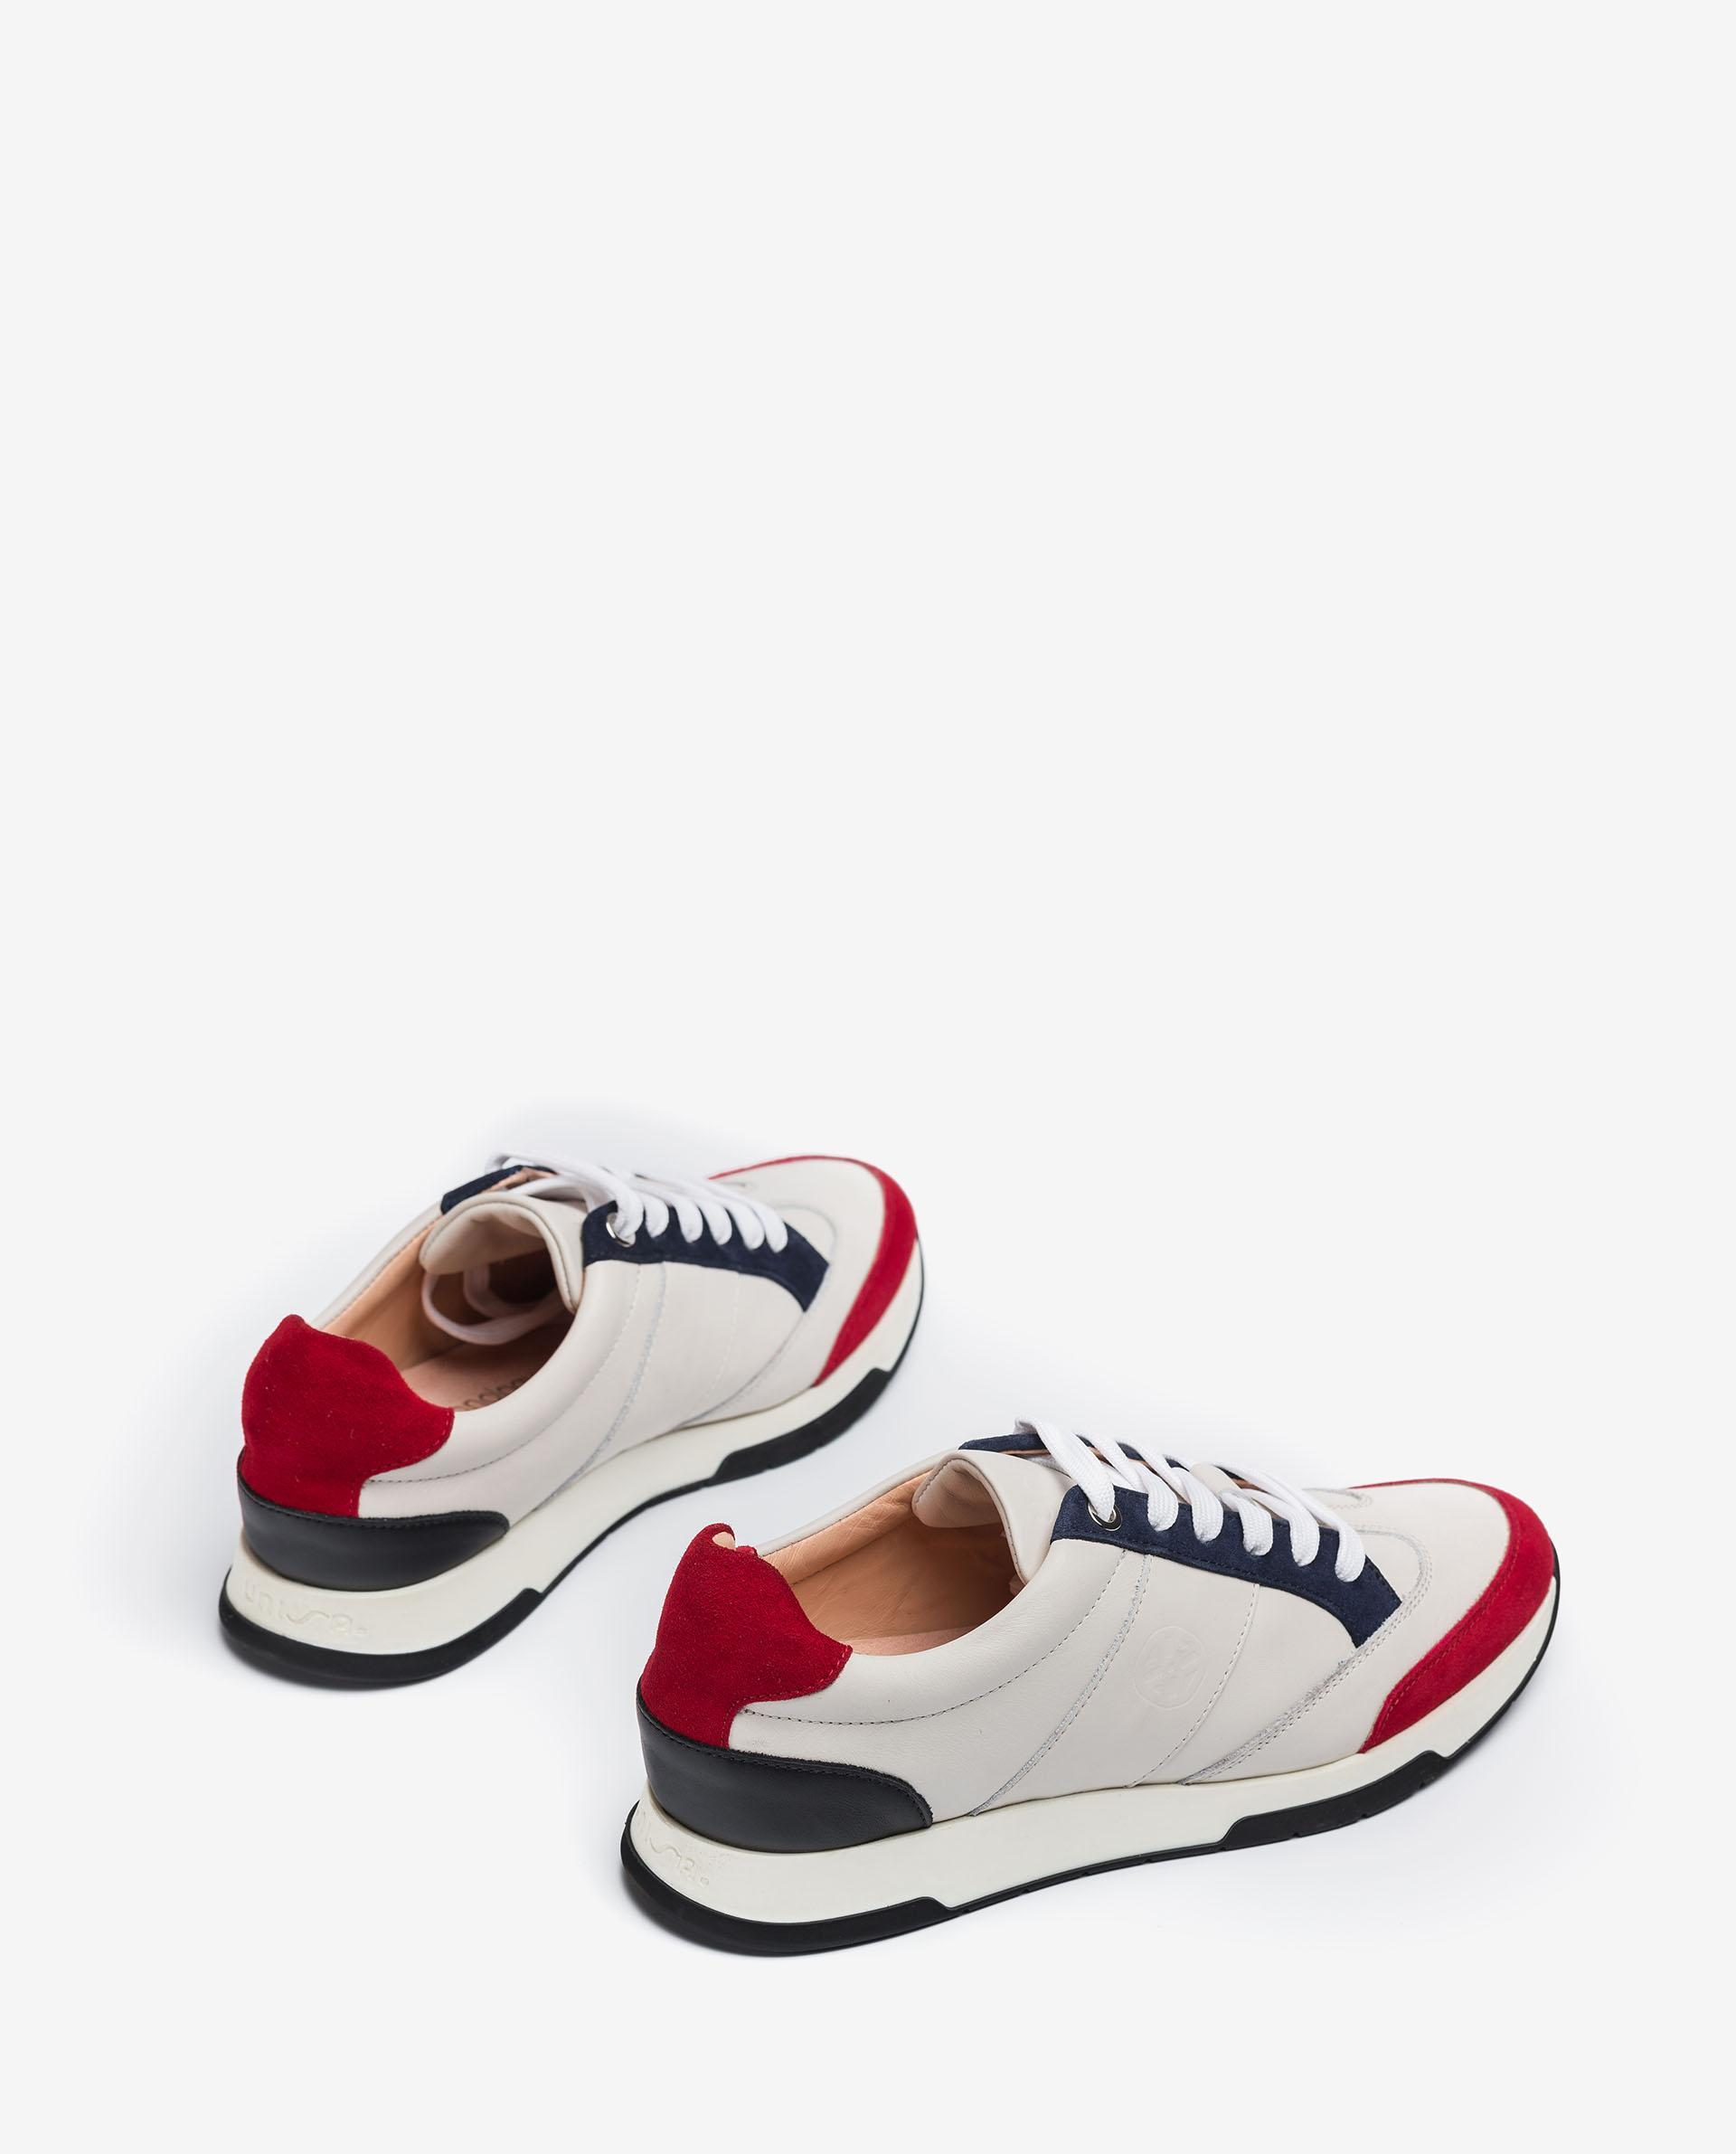 UNISA Monogram leather and kid suede sneakers FALCONI_21_NF_KS 2